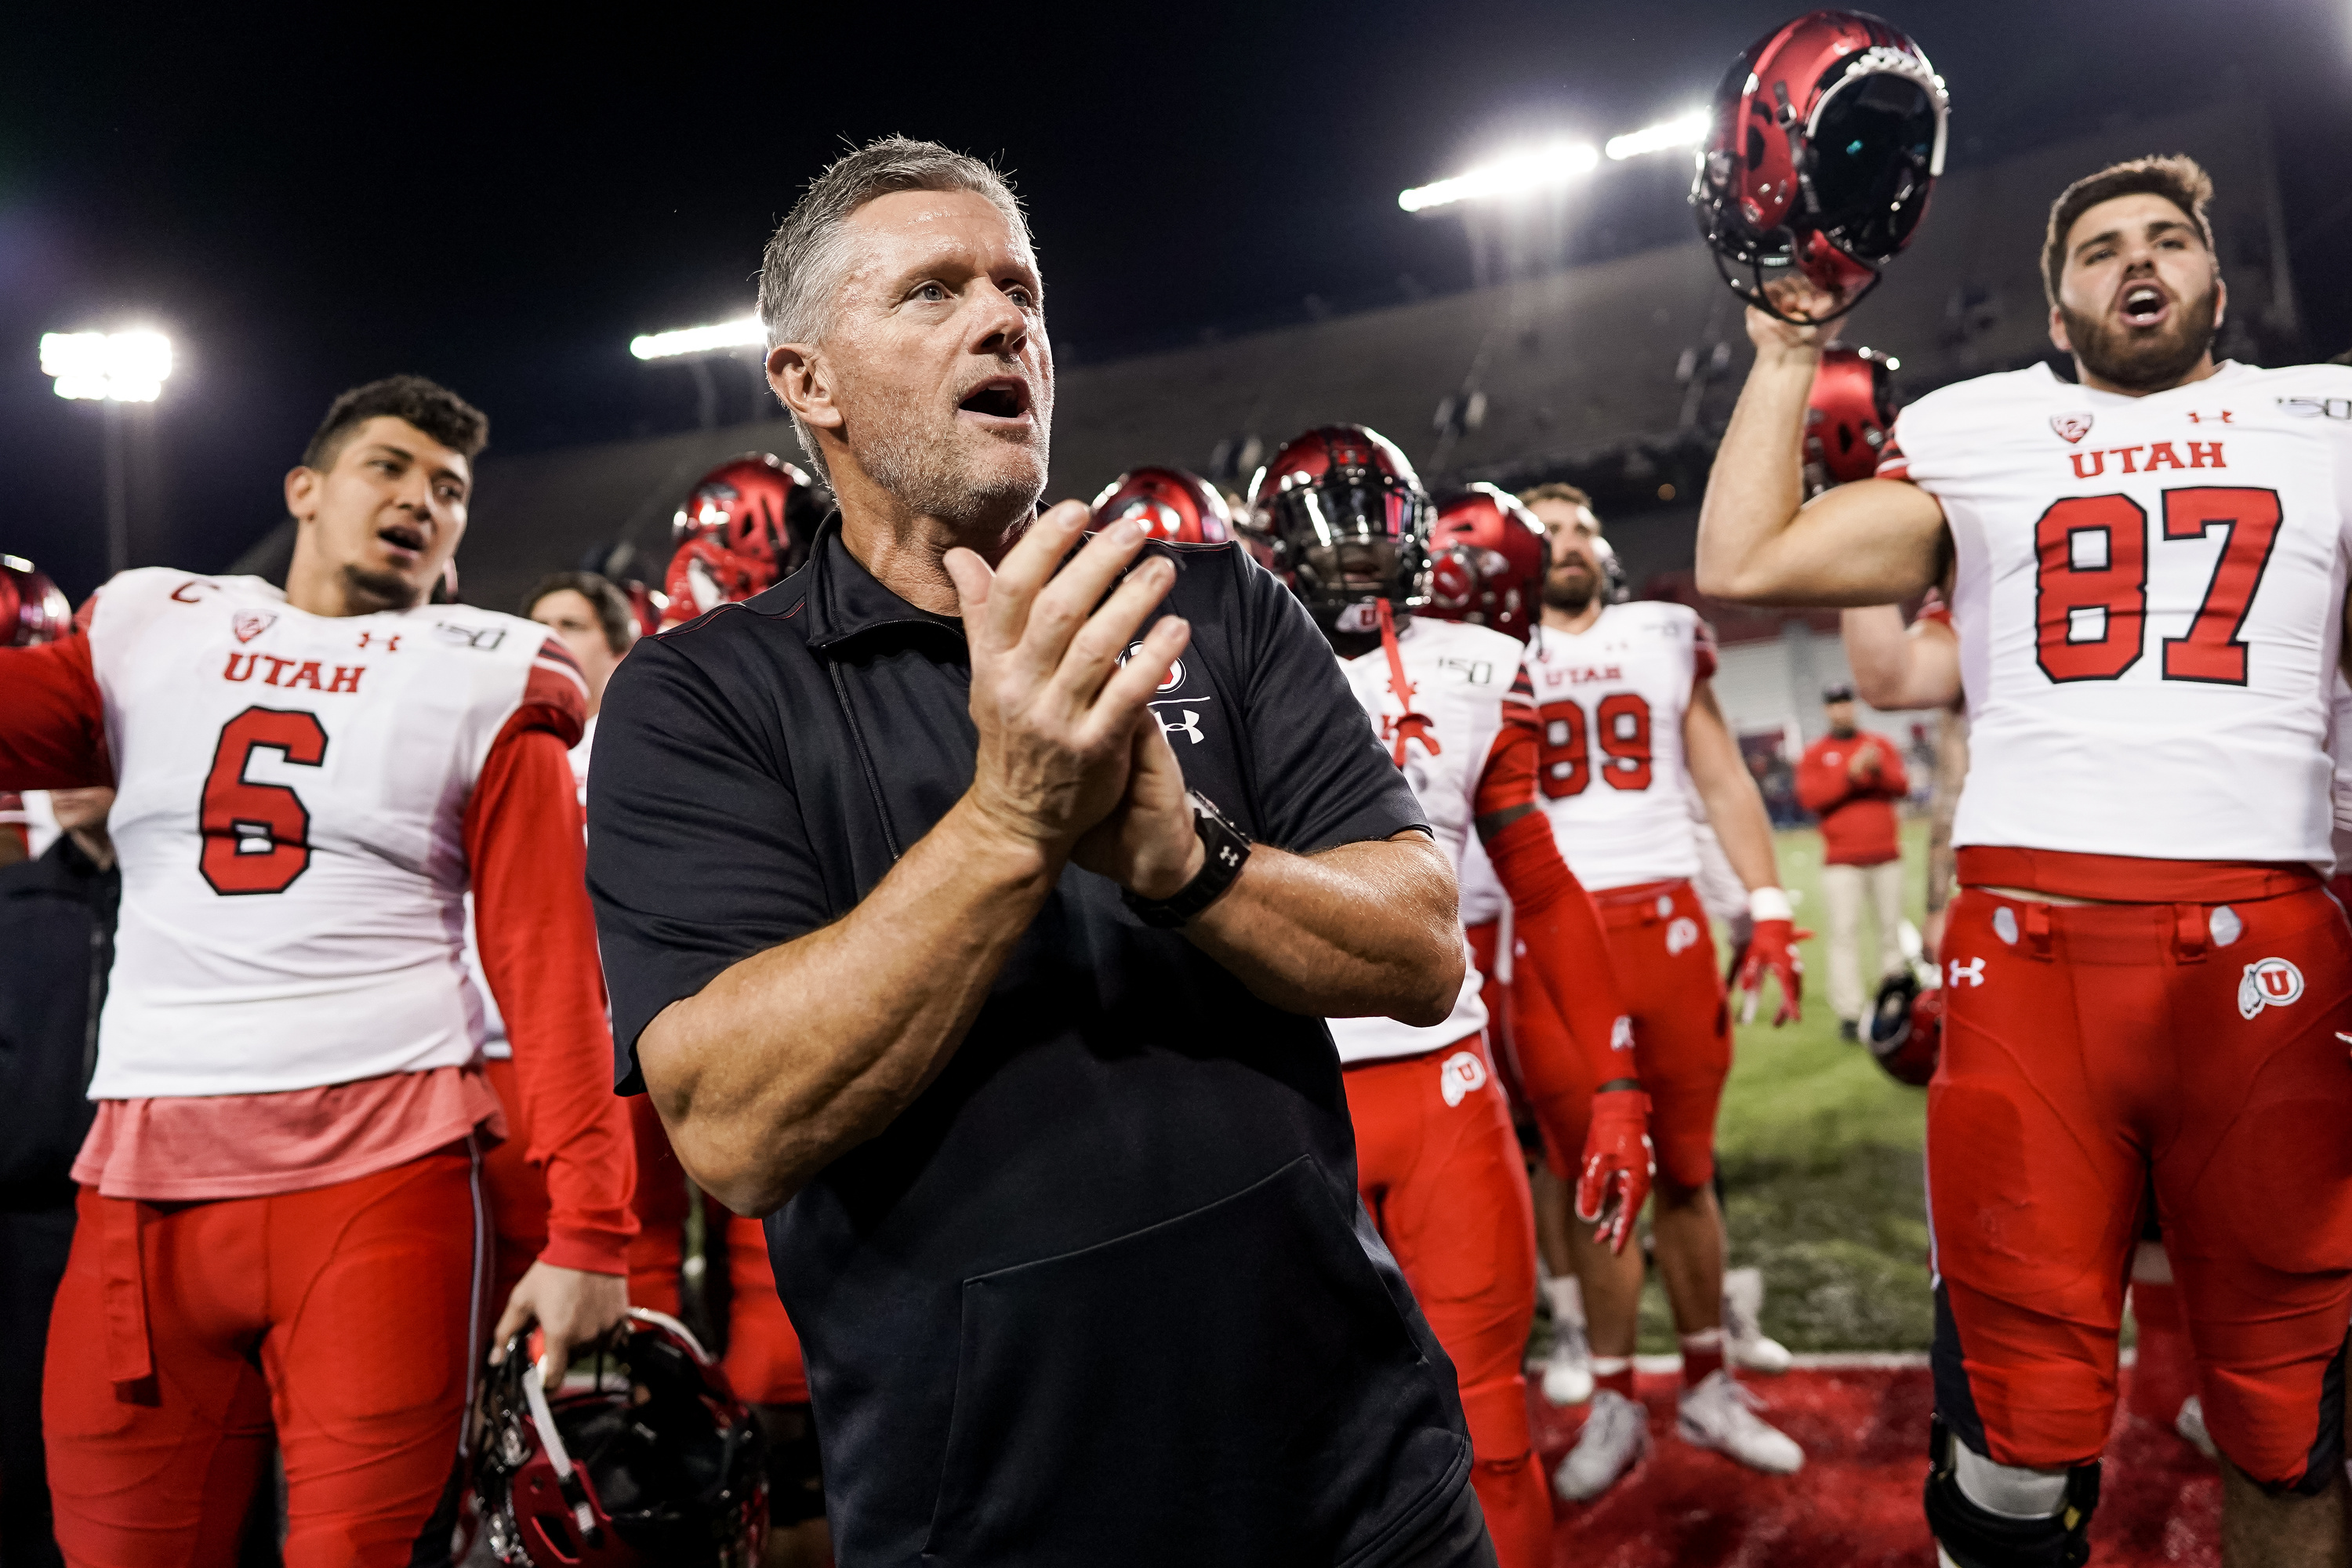 Utah Utes head coach Kyle Whittingham and players celebrate their 35-7 win over the Arizona Wildcats at Arizona Stadium in Tucson, Arizona on Saturday, Nov. 23, 2019.